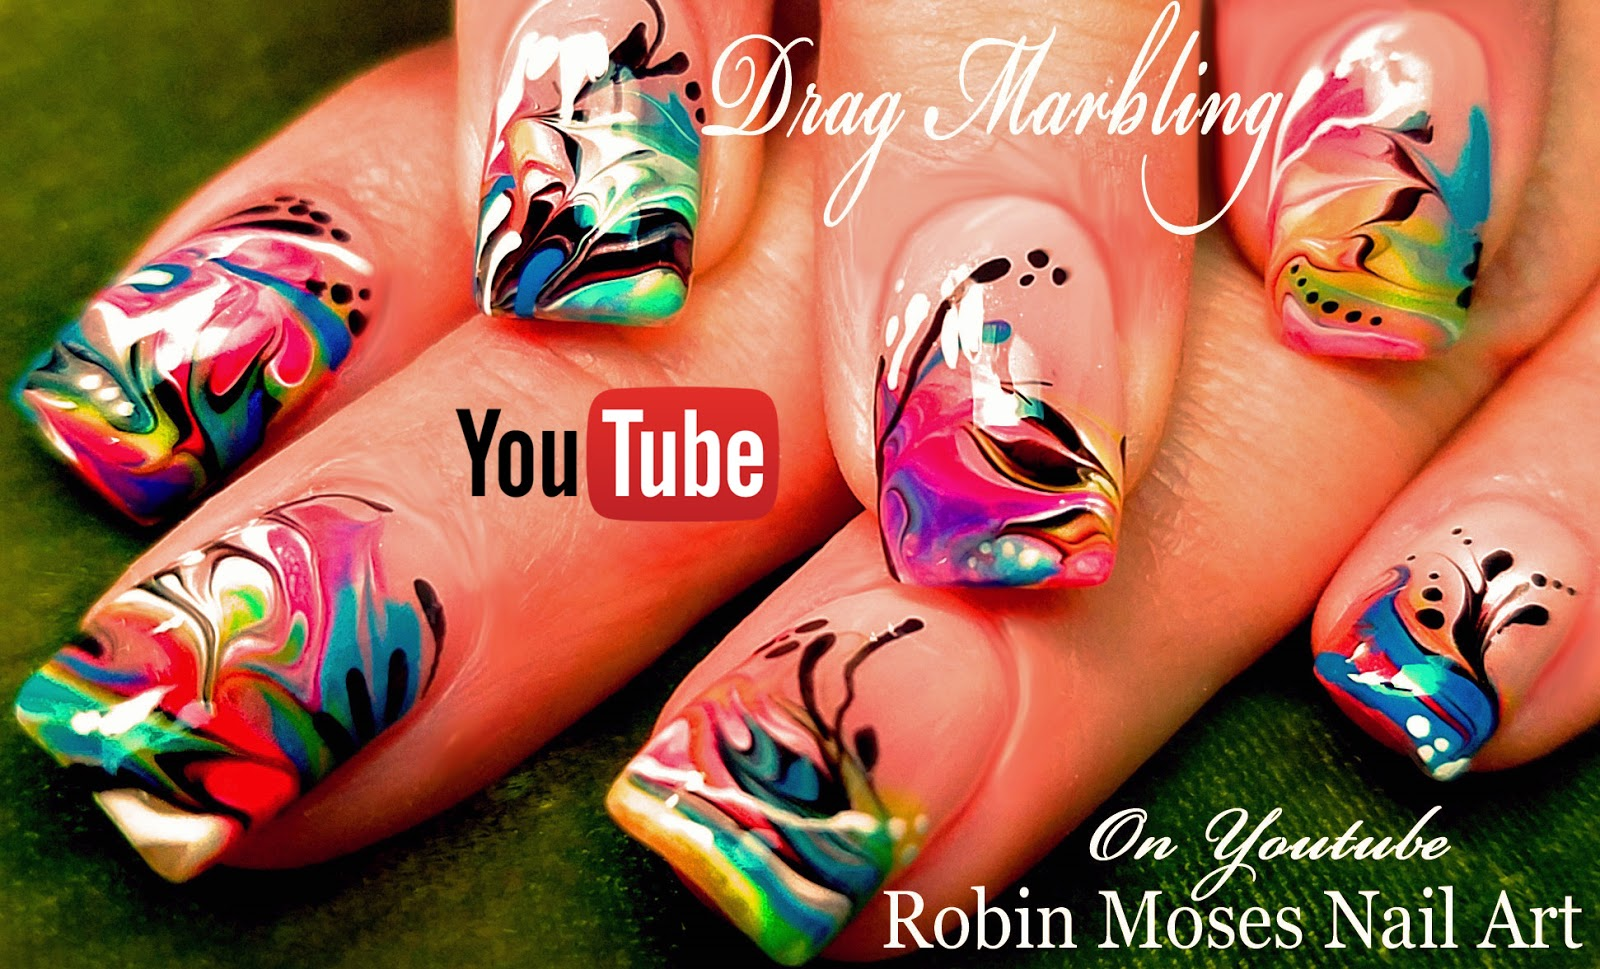 Nail Art By Robin Moses Essie Neons Will Glow Your Mind No Water Dry And Drag Marble Rainbow Neon Nails